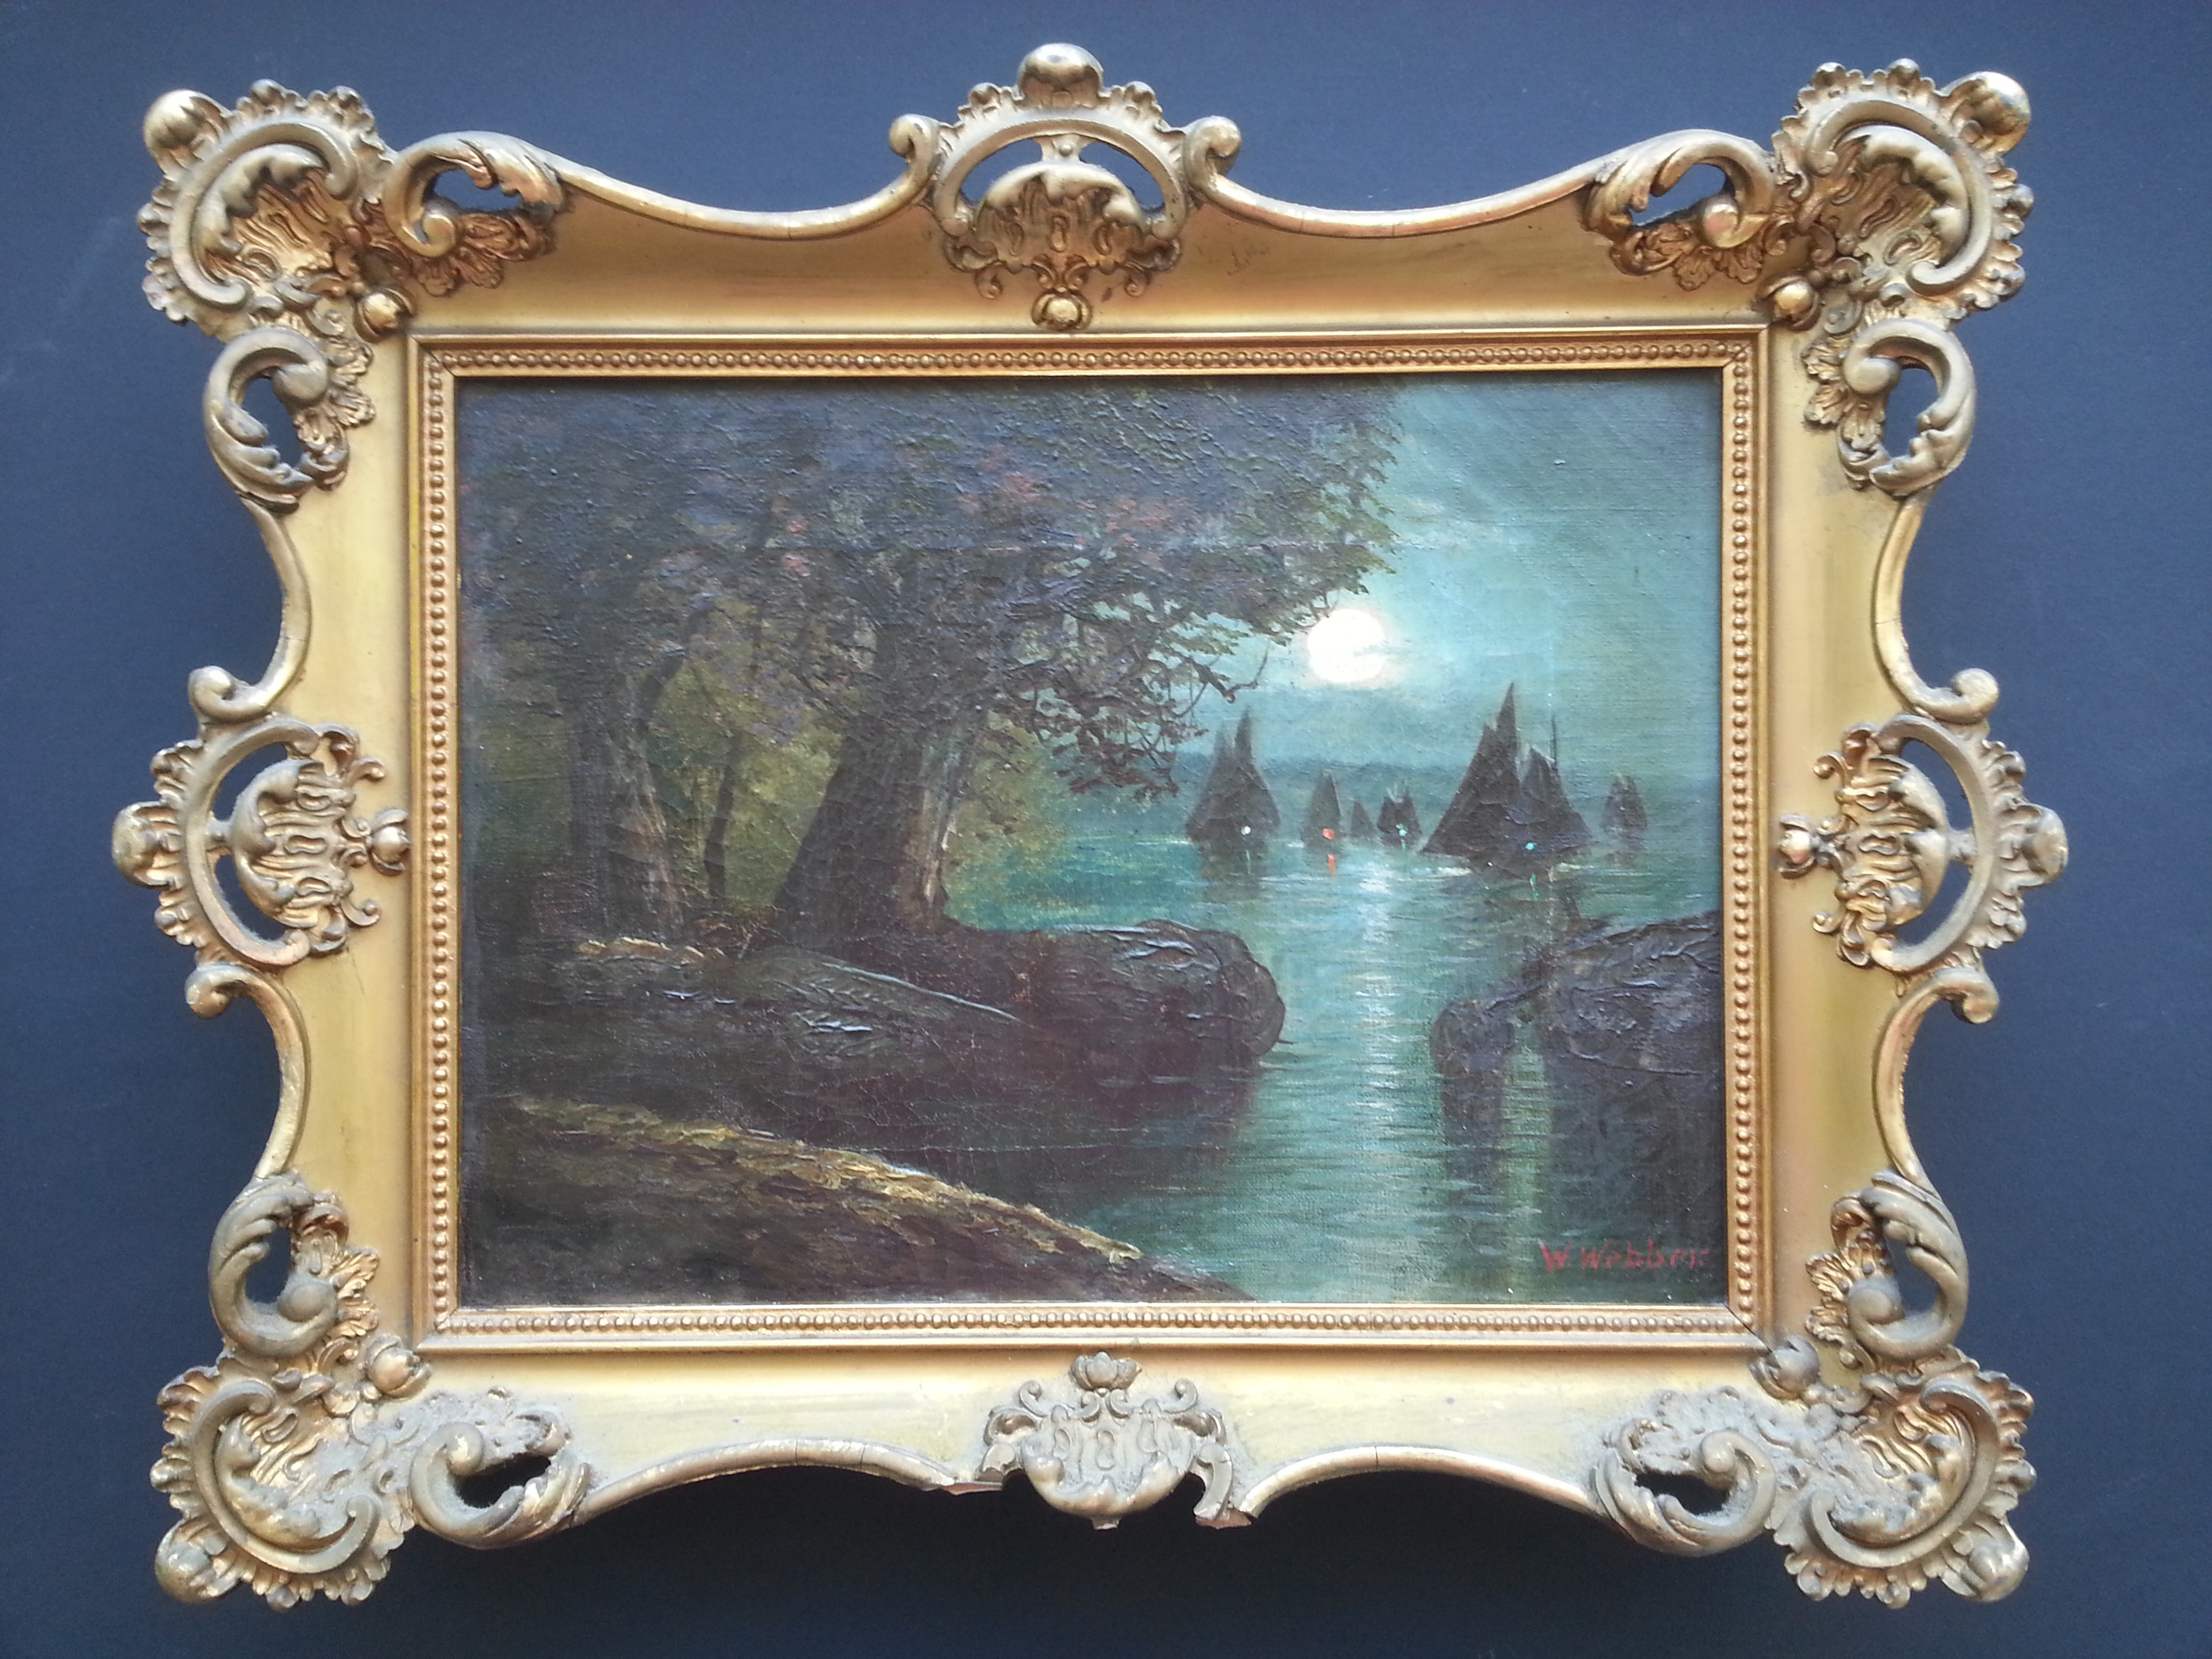 """Sailing Under Moonlight    Oil on Canvas, Signed (l.r.) """"W. Webber""""  9"""" x 12"""" / 13"""" x 16"""" Framed ( Original Period Frame )    PriceAvailable Upon Request"""